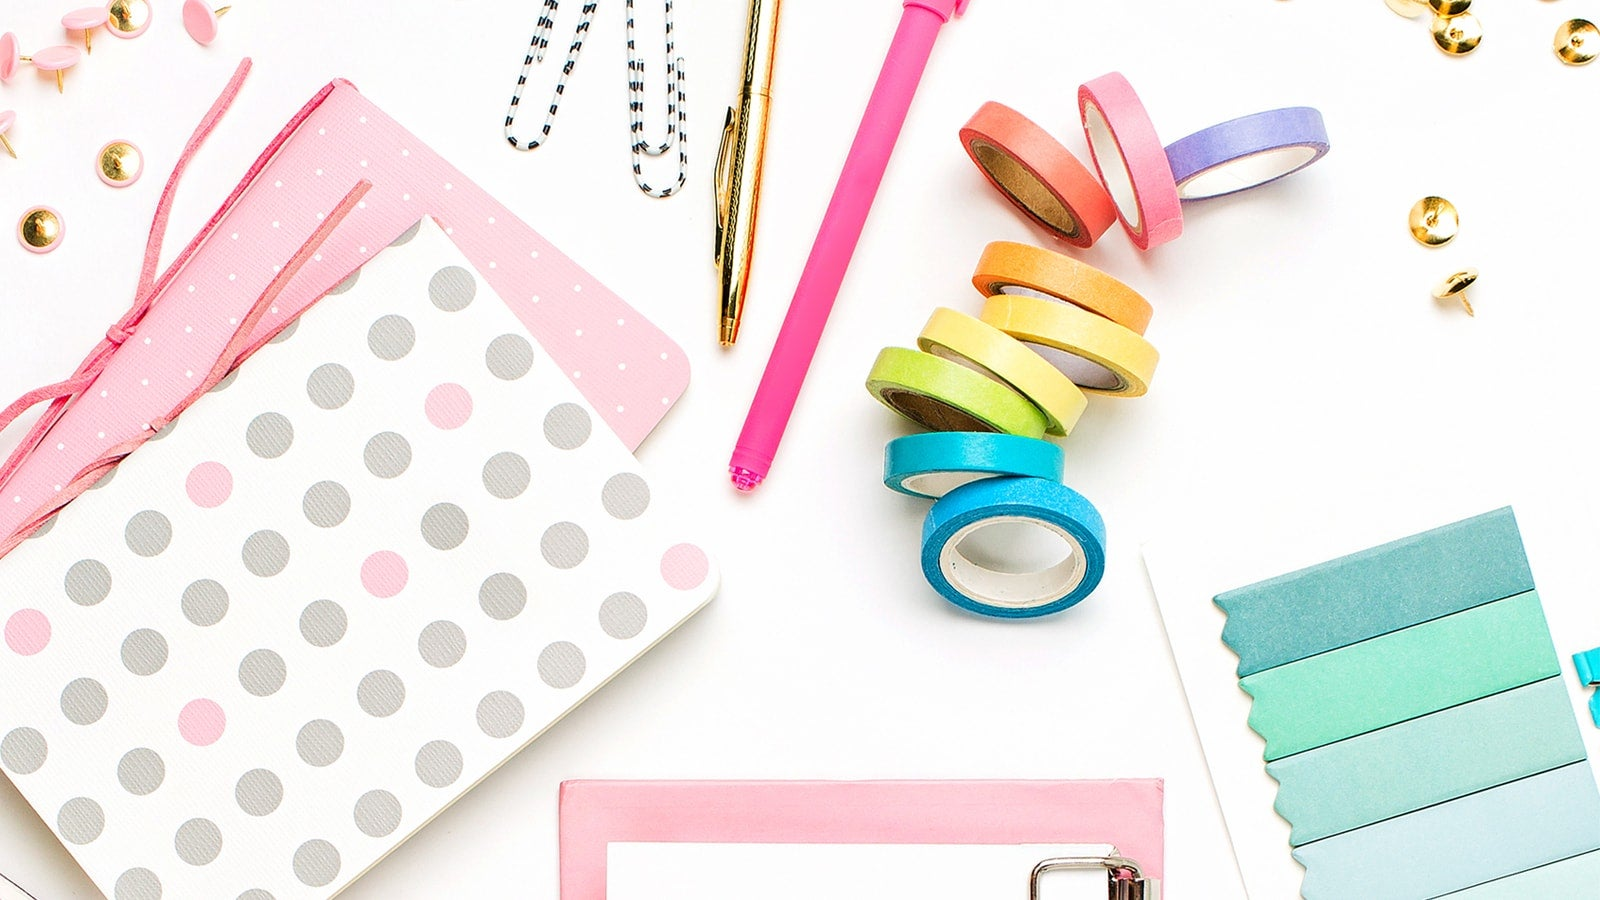 Colourful washi tape and stationery on a white surface